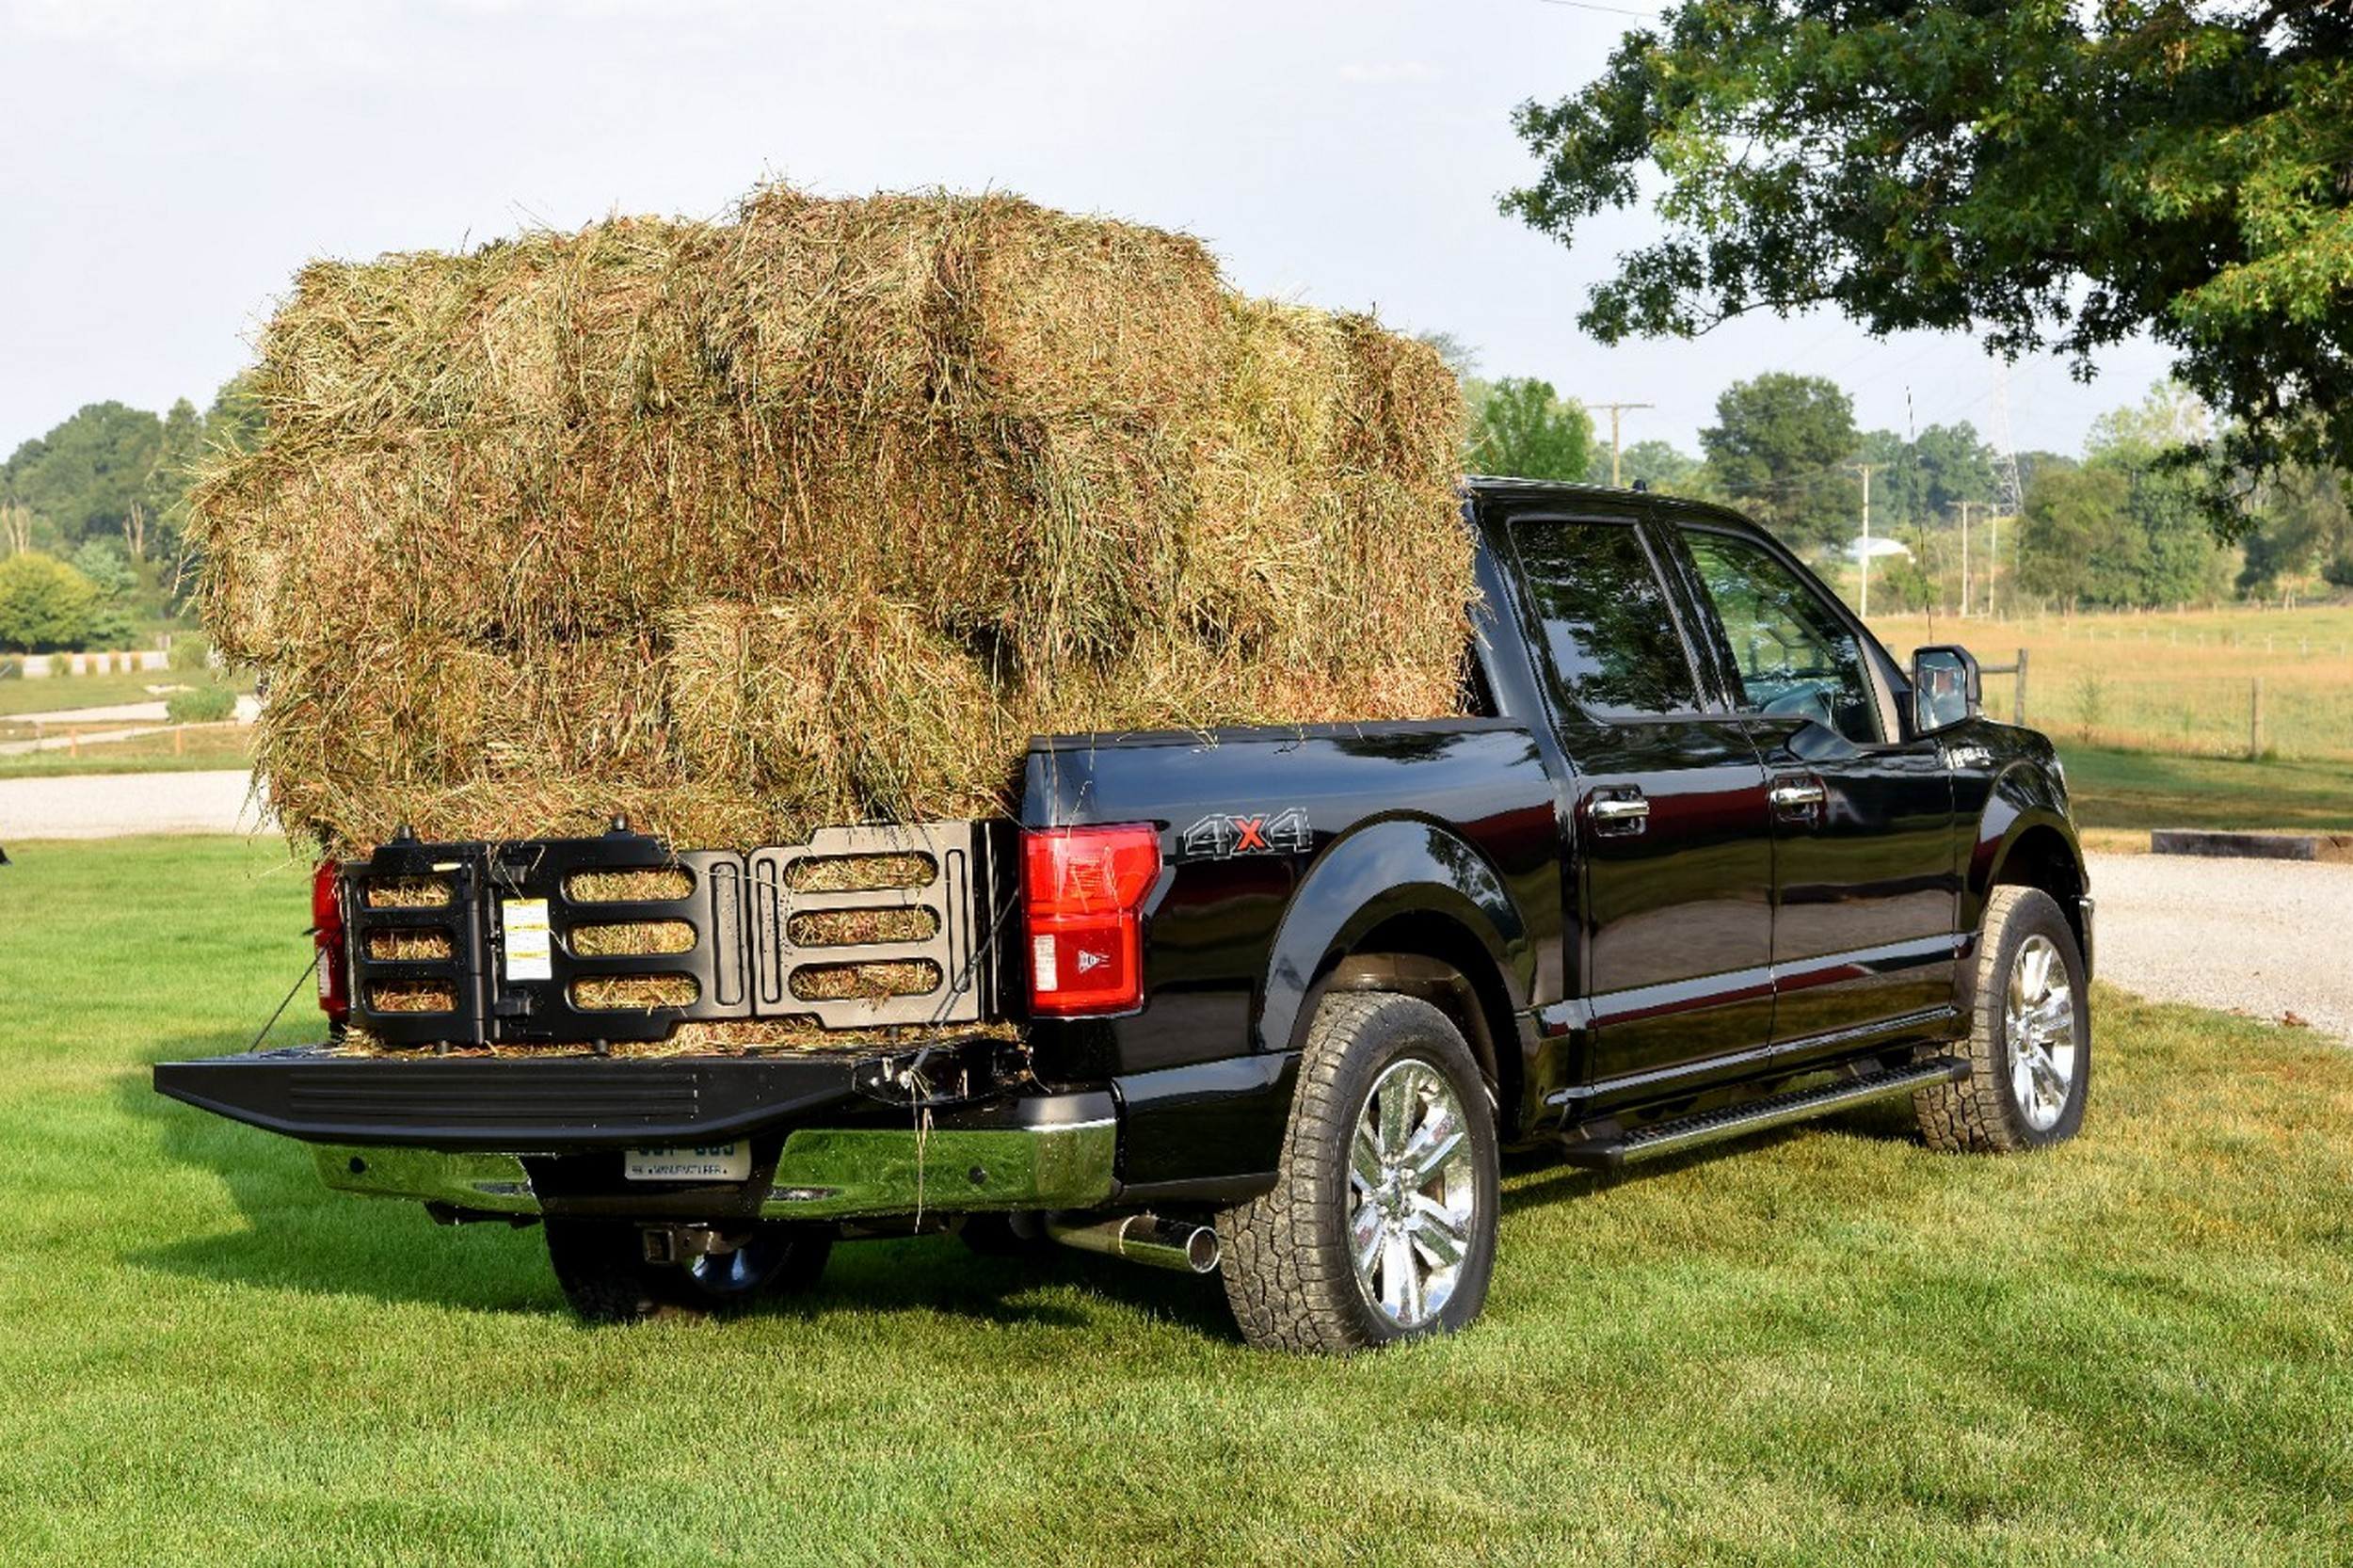 Ford F-150 common problems - pickup truck with hay bales in bed